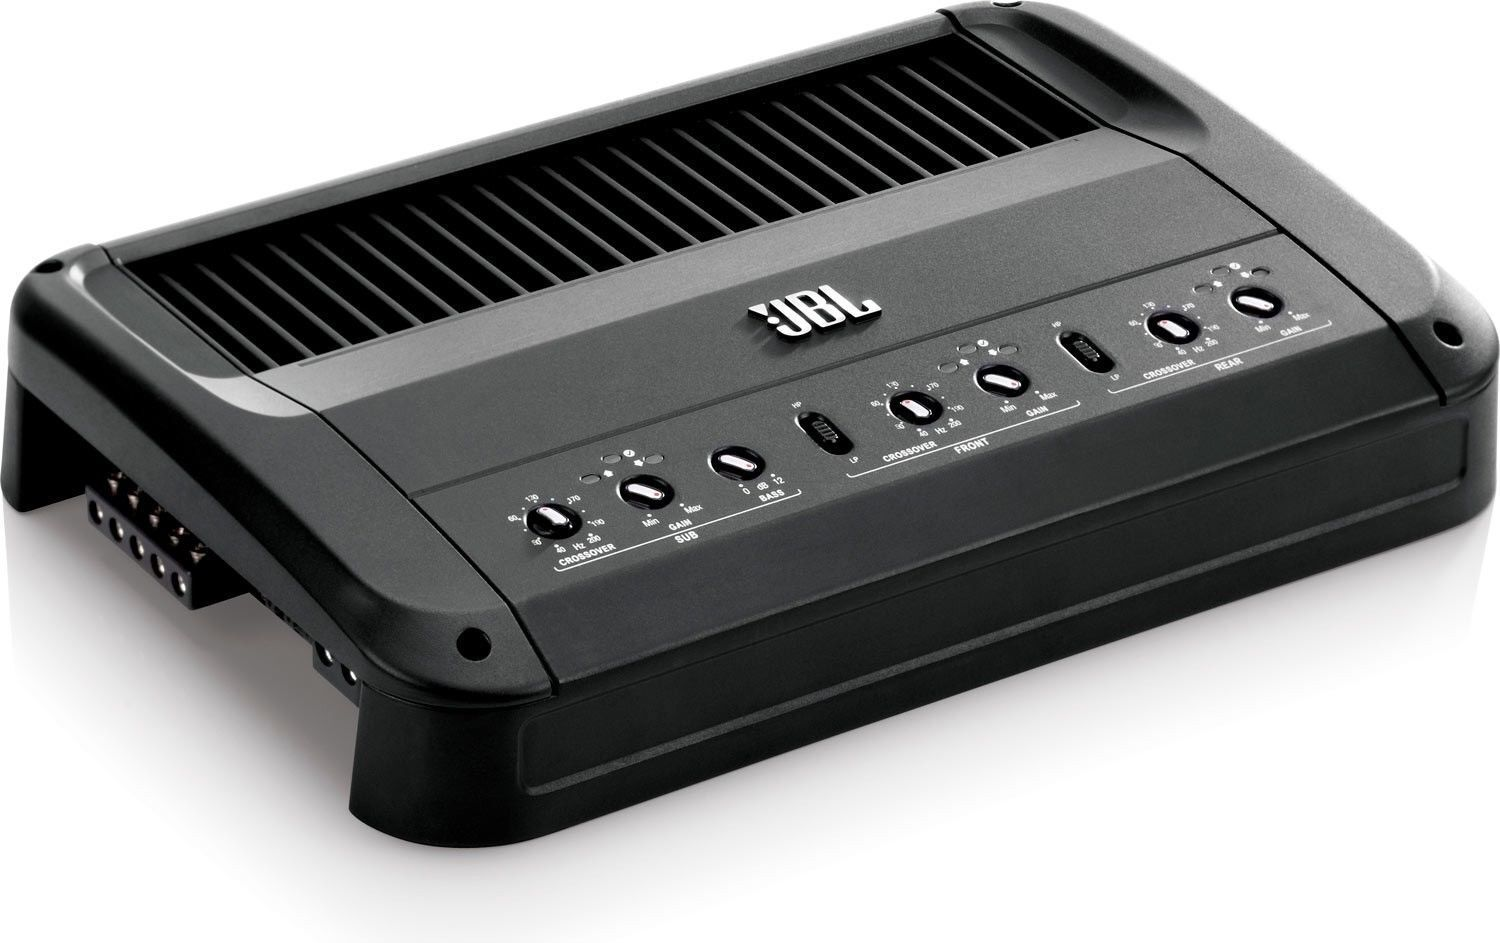 Power your front rear and subwoofer speakers with one amplifier by selecting the 5 channel jbl gto 5ez with a peak power of 1 935 watts and a